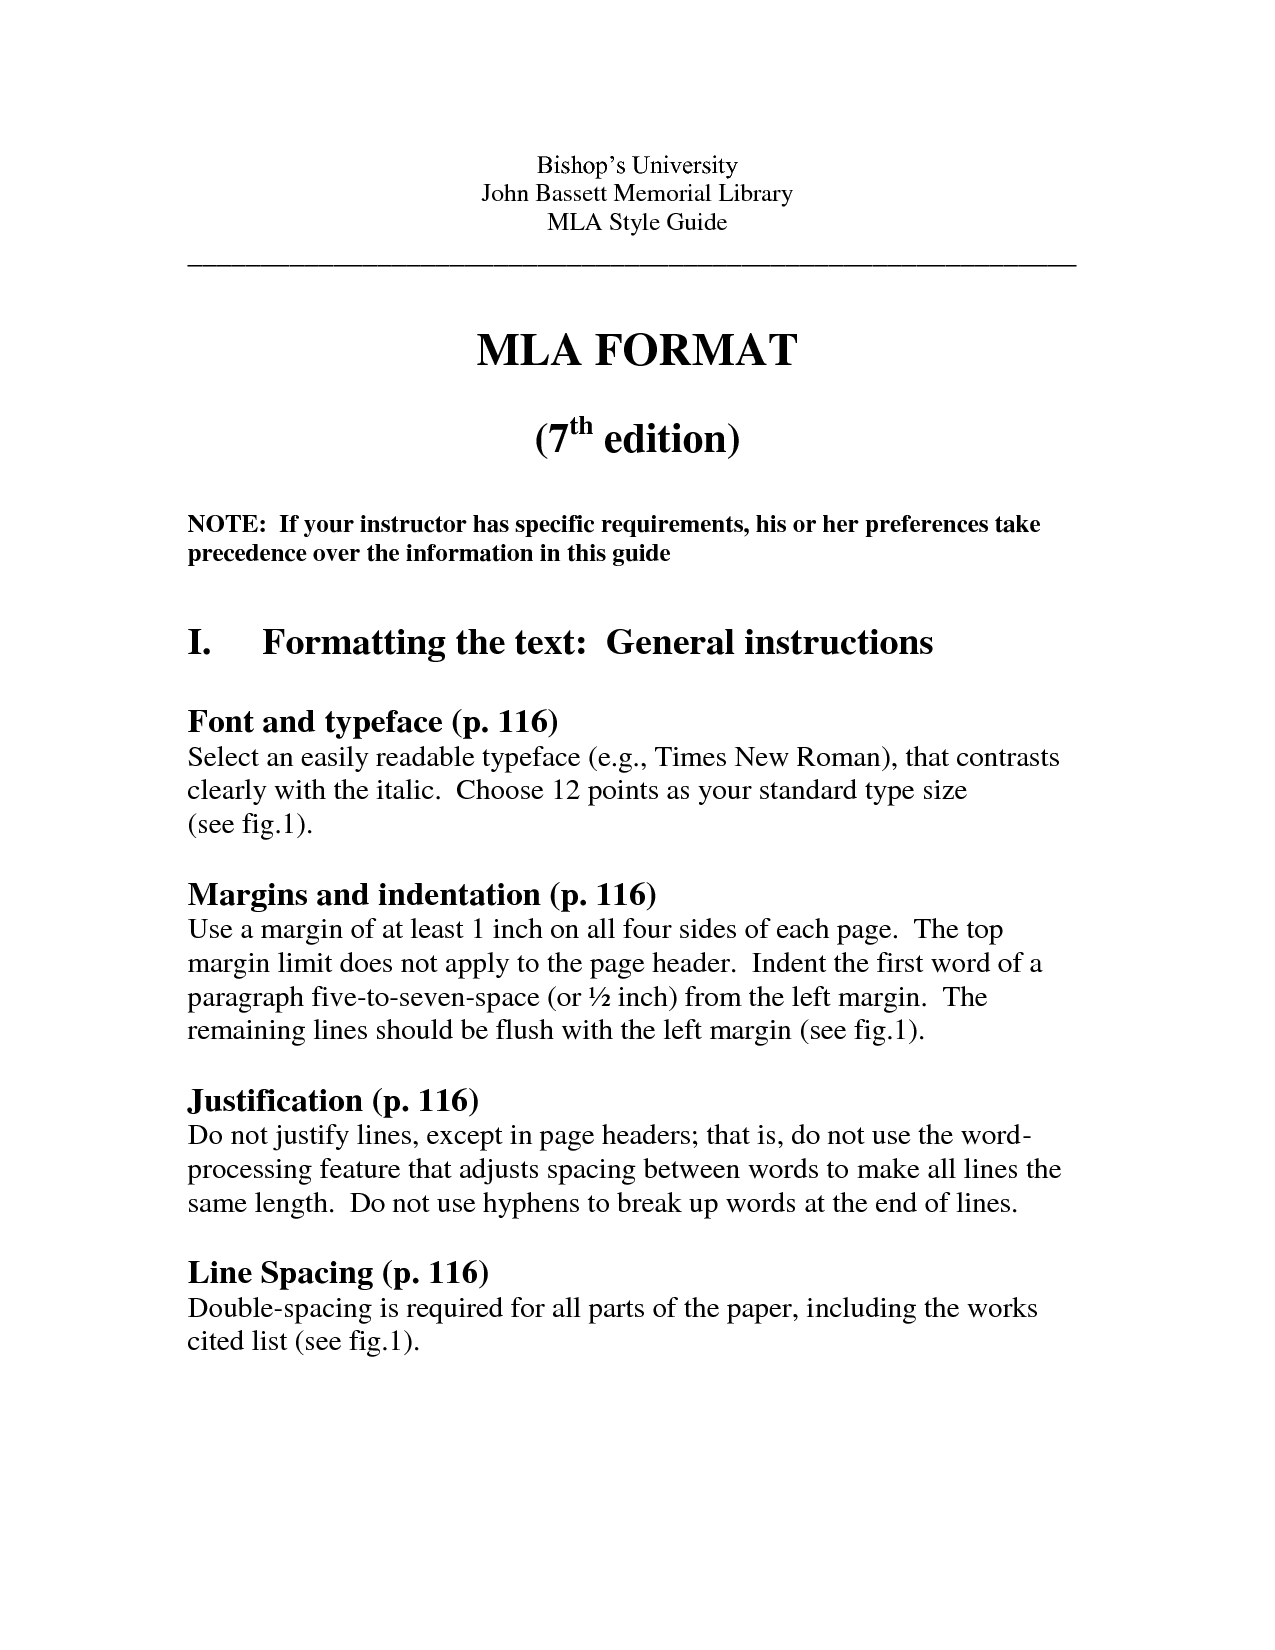 mla format for spanish essays Formatting an essay in mla style heading on the first page, in the upper left-hand corner, place your name, your instructor's name, the course, and the date on.